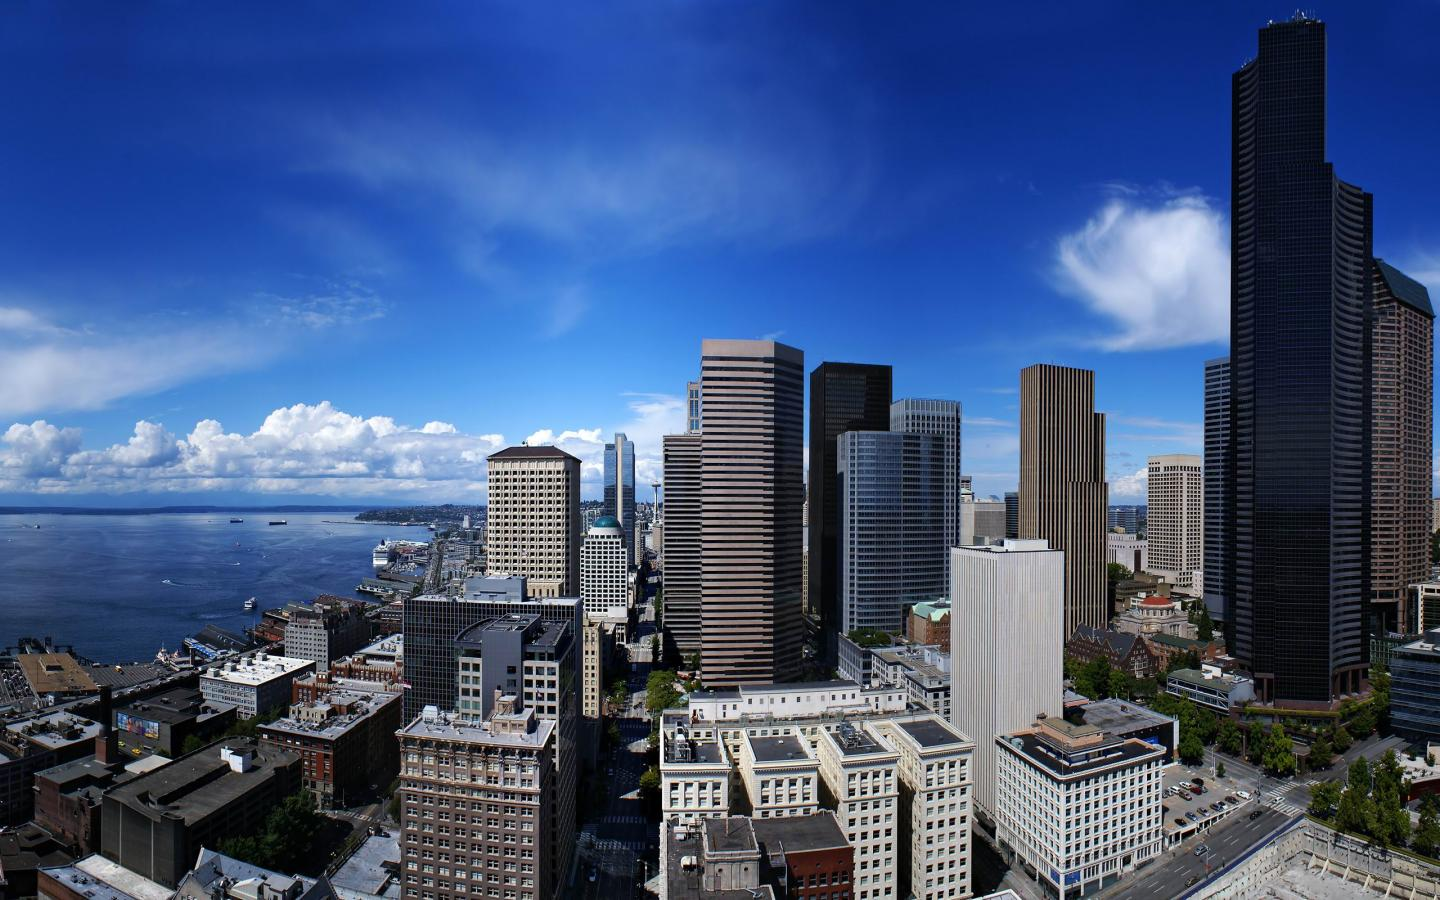 seattle cityscape  seattle  washington   United States  USA Pictures HD Wallpaper